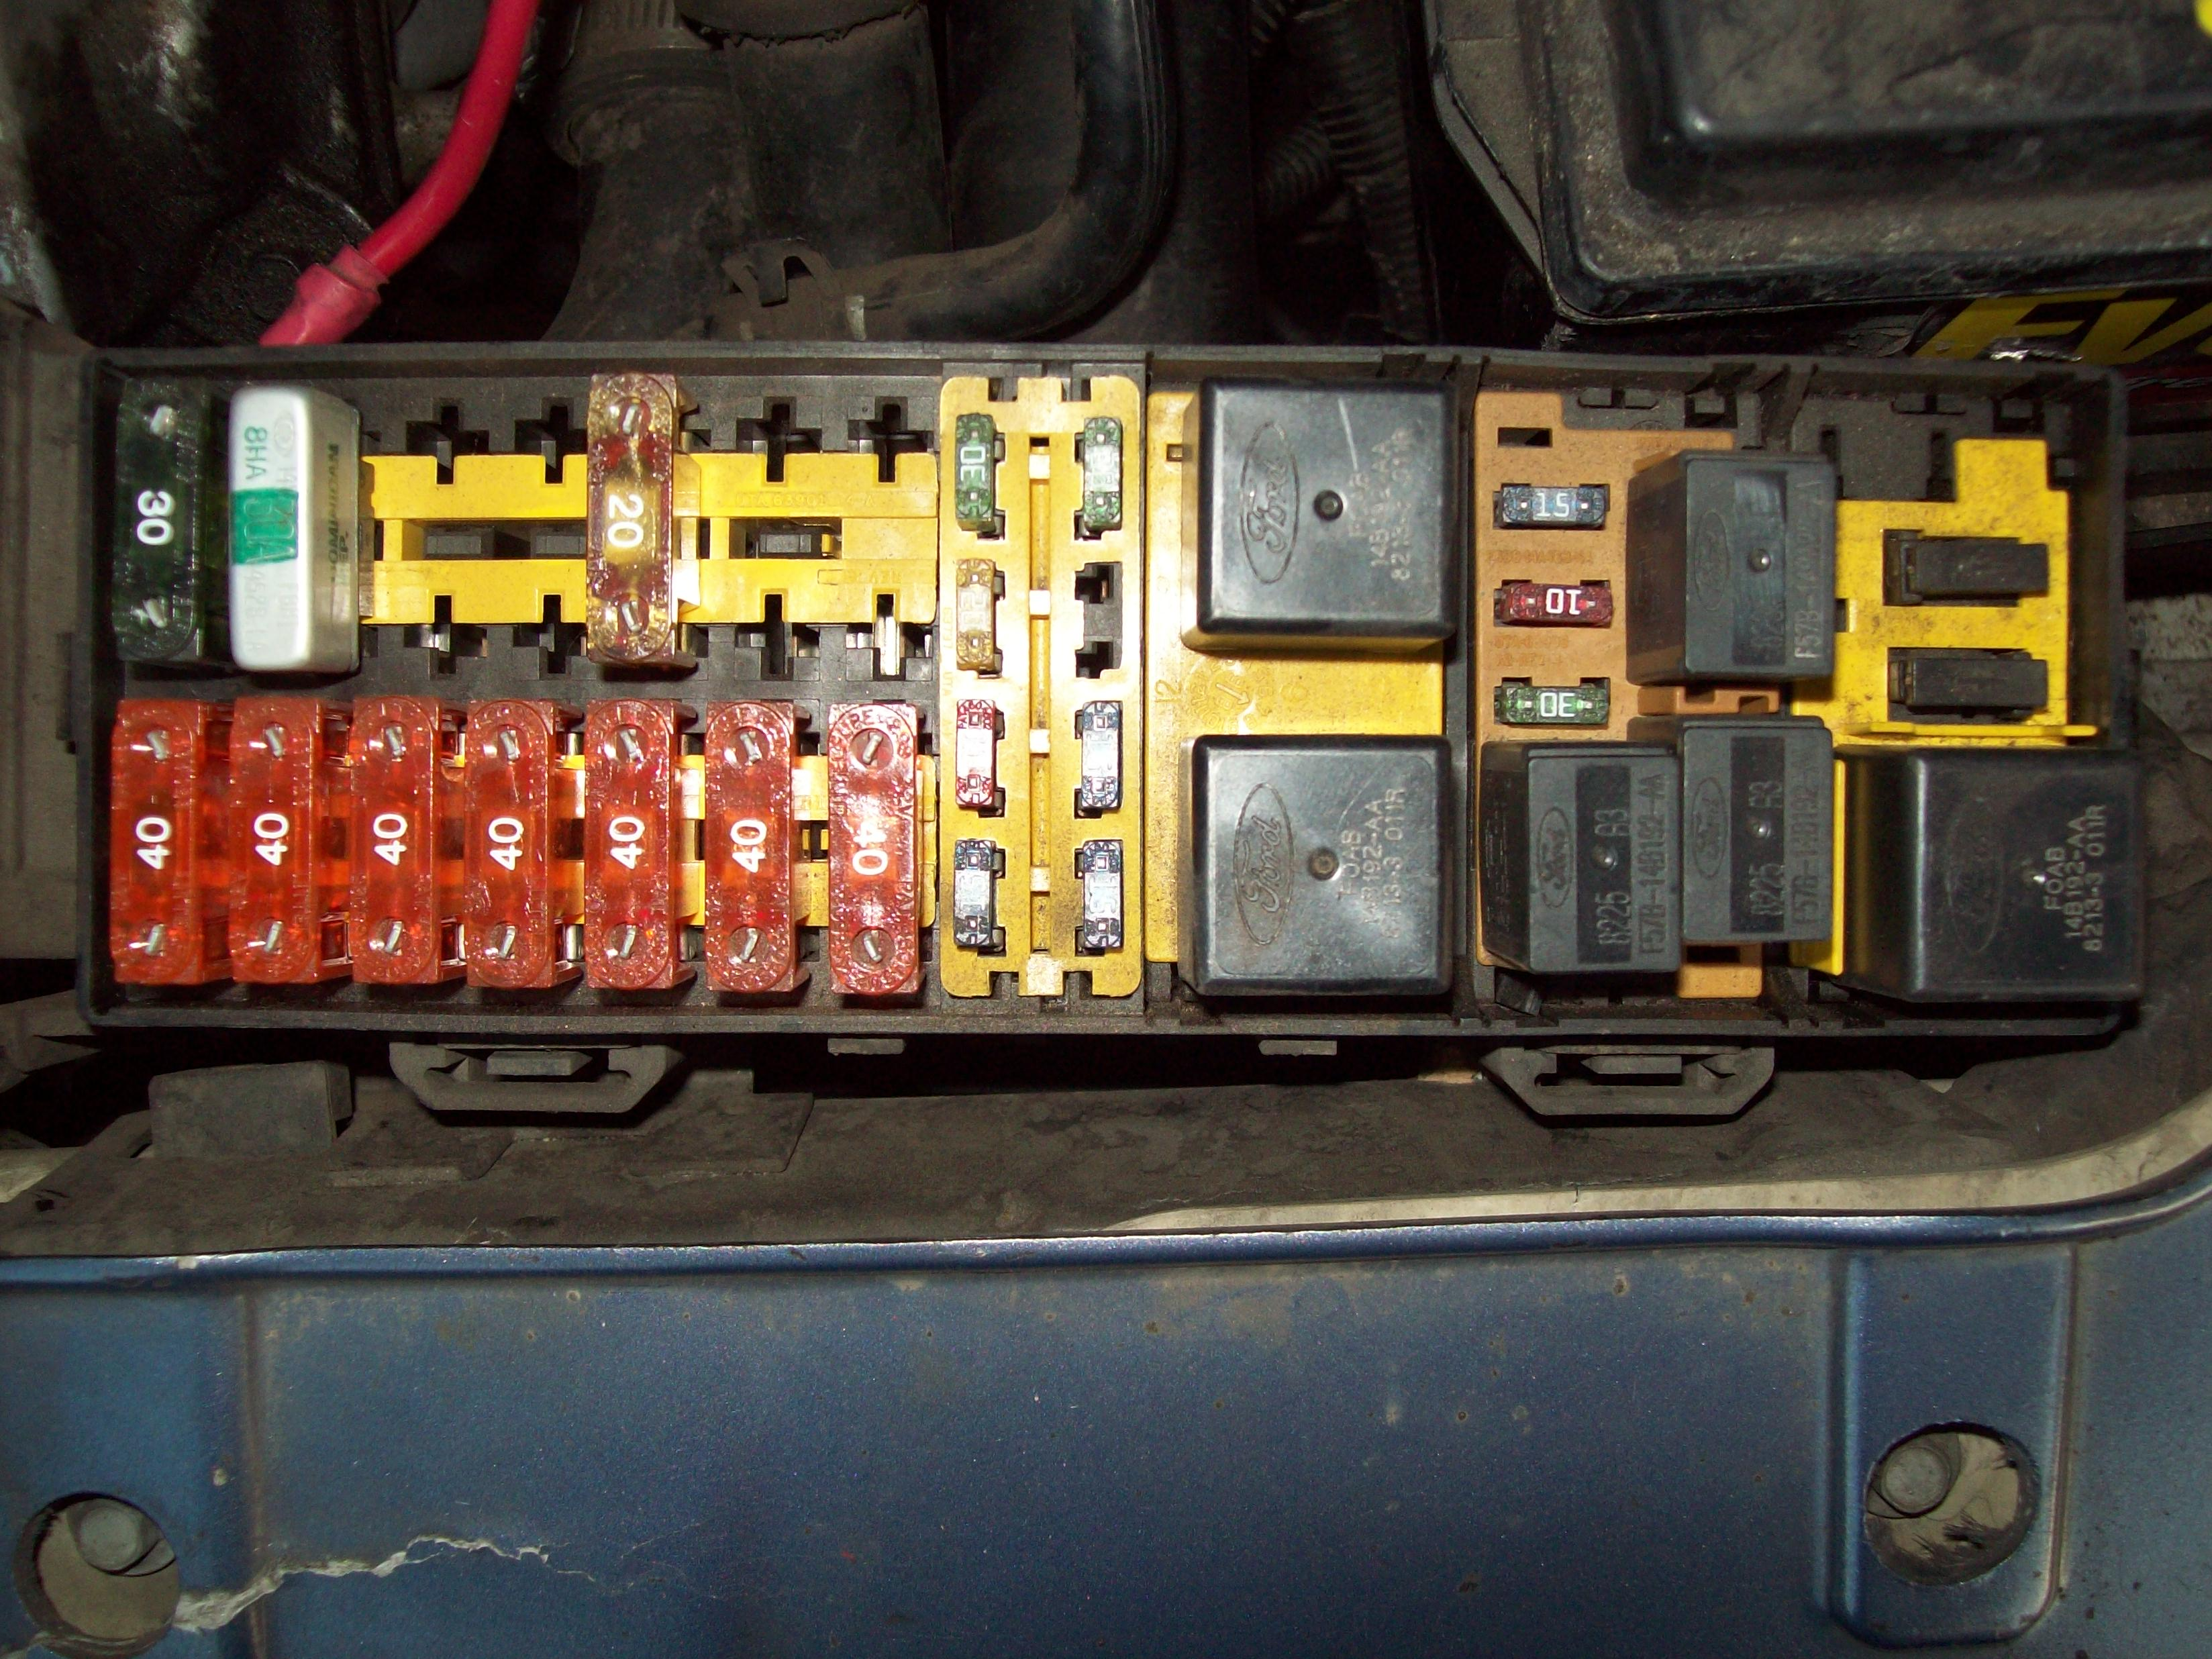 Ford Taurus Manual Fuse Box Wiring Library 2005 Sel Diagram 2002 3 0 Panel Pdf Download